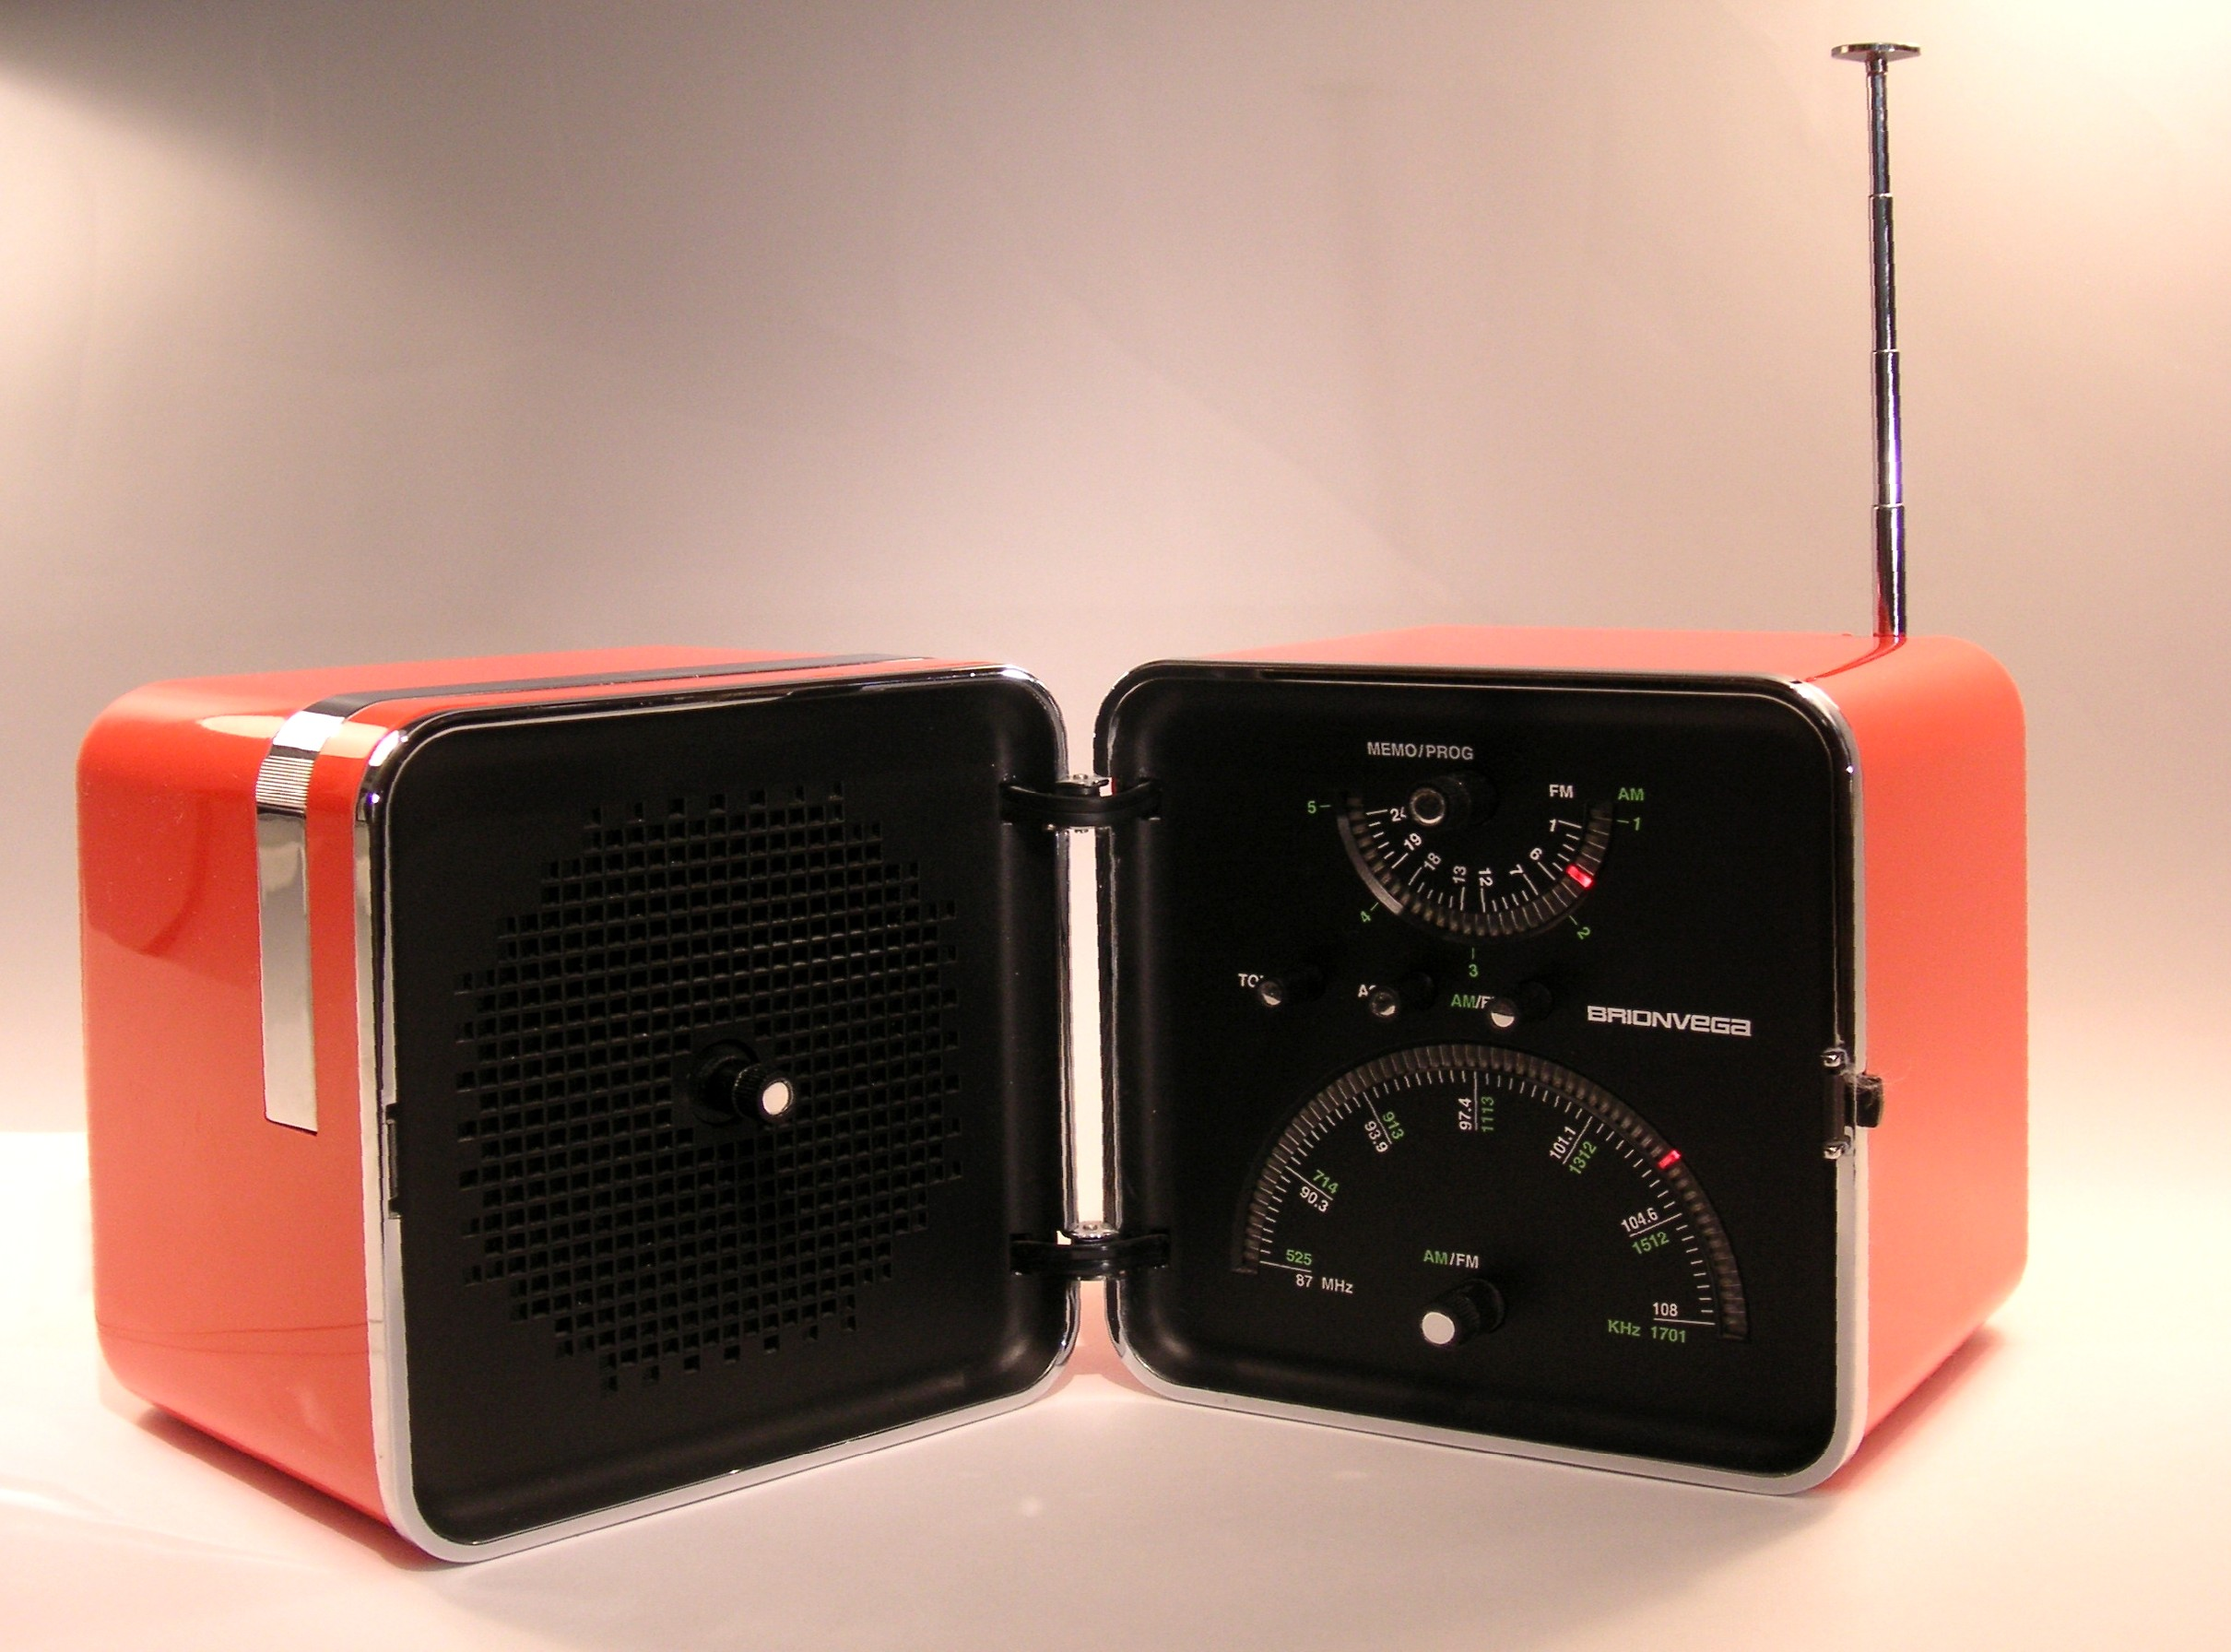 ATTACHMENT DETAILS 5-iconic-design-pieces-krome-italian-refurbishing-brionvega-cube-radio